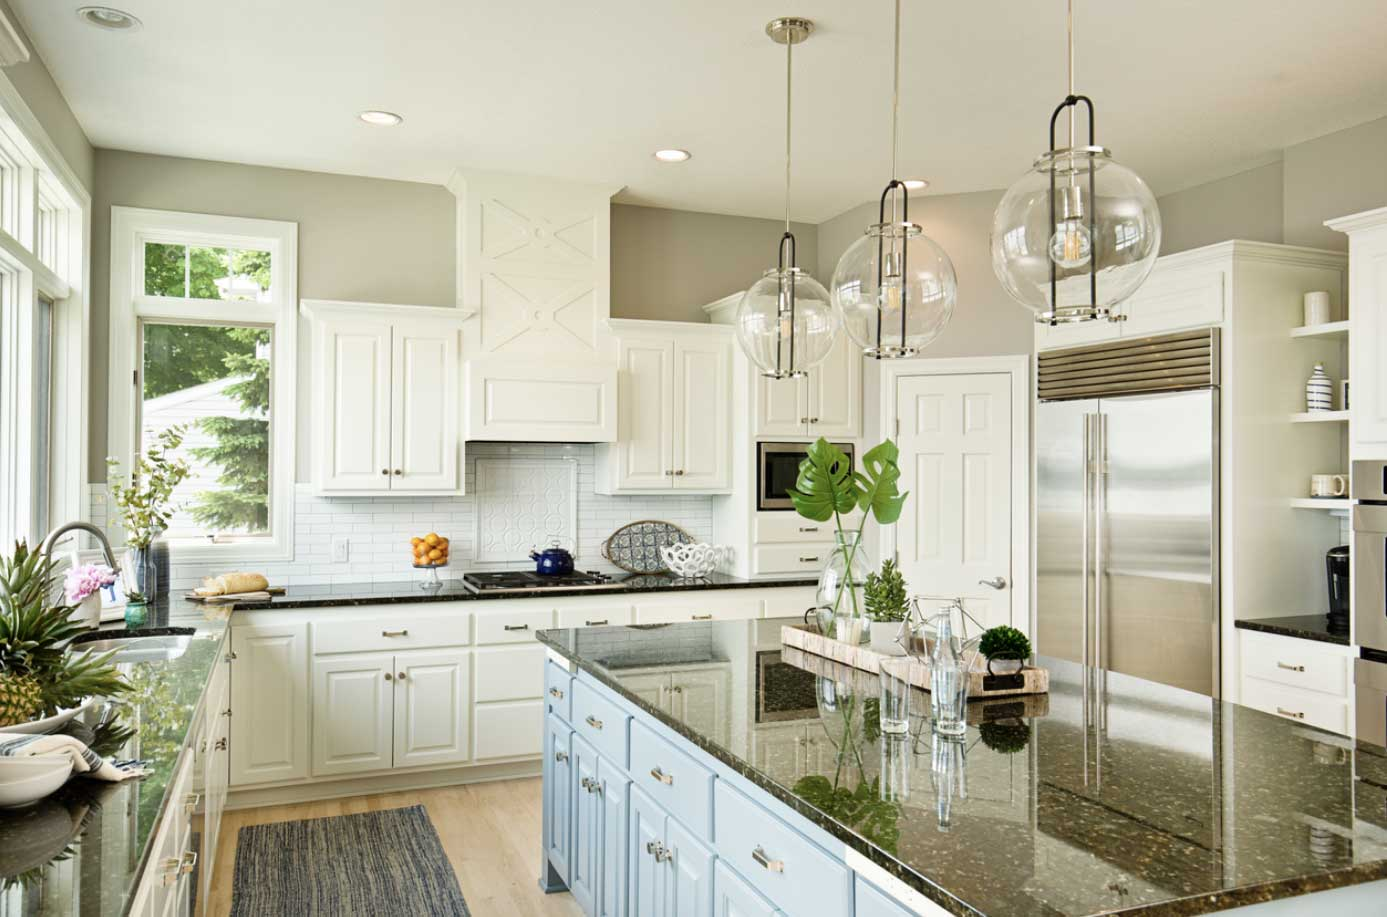 How to Prepare Your Kitchen Cabinets for Paint